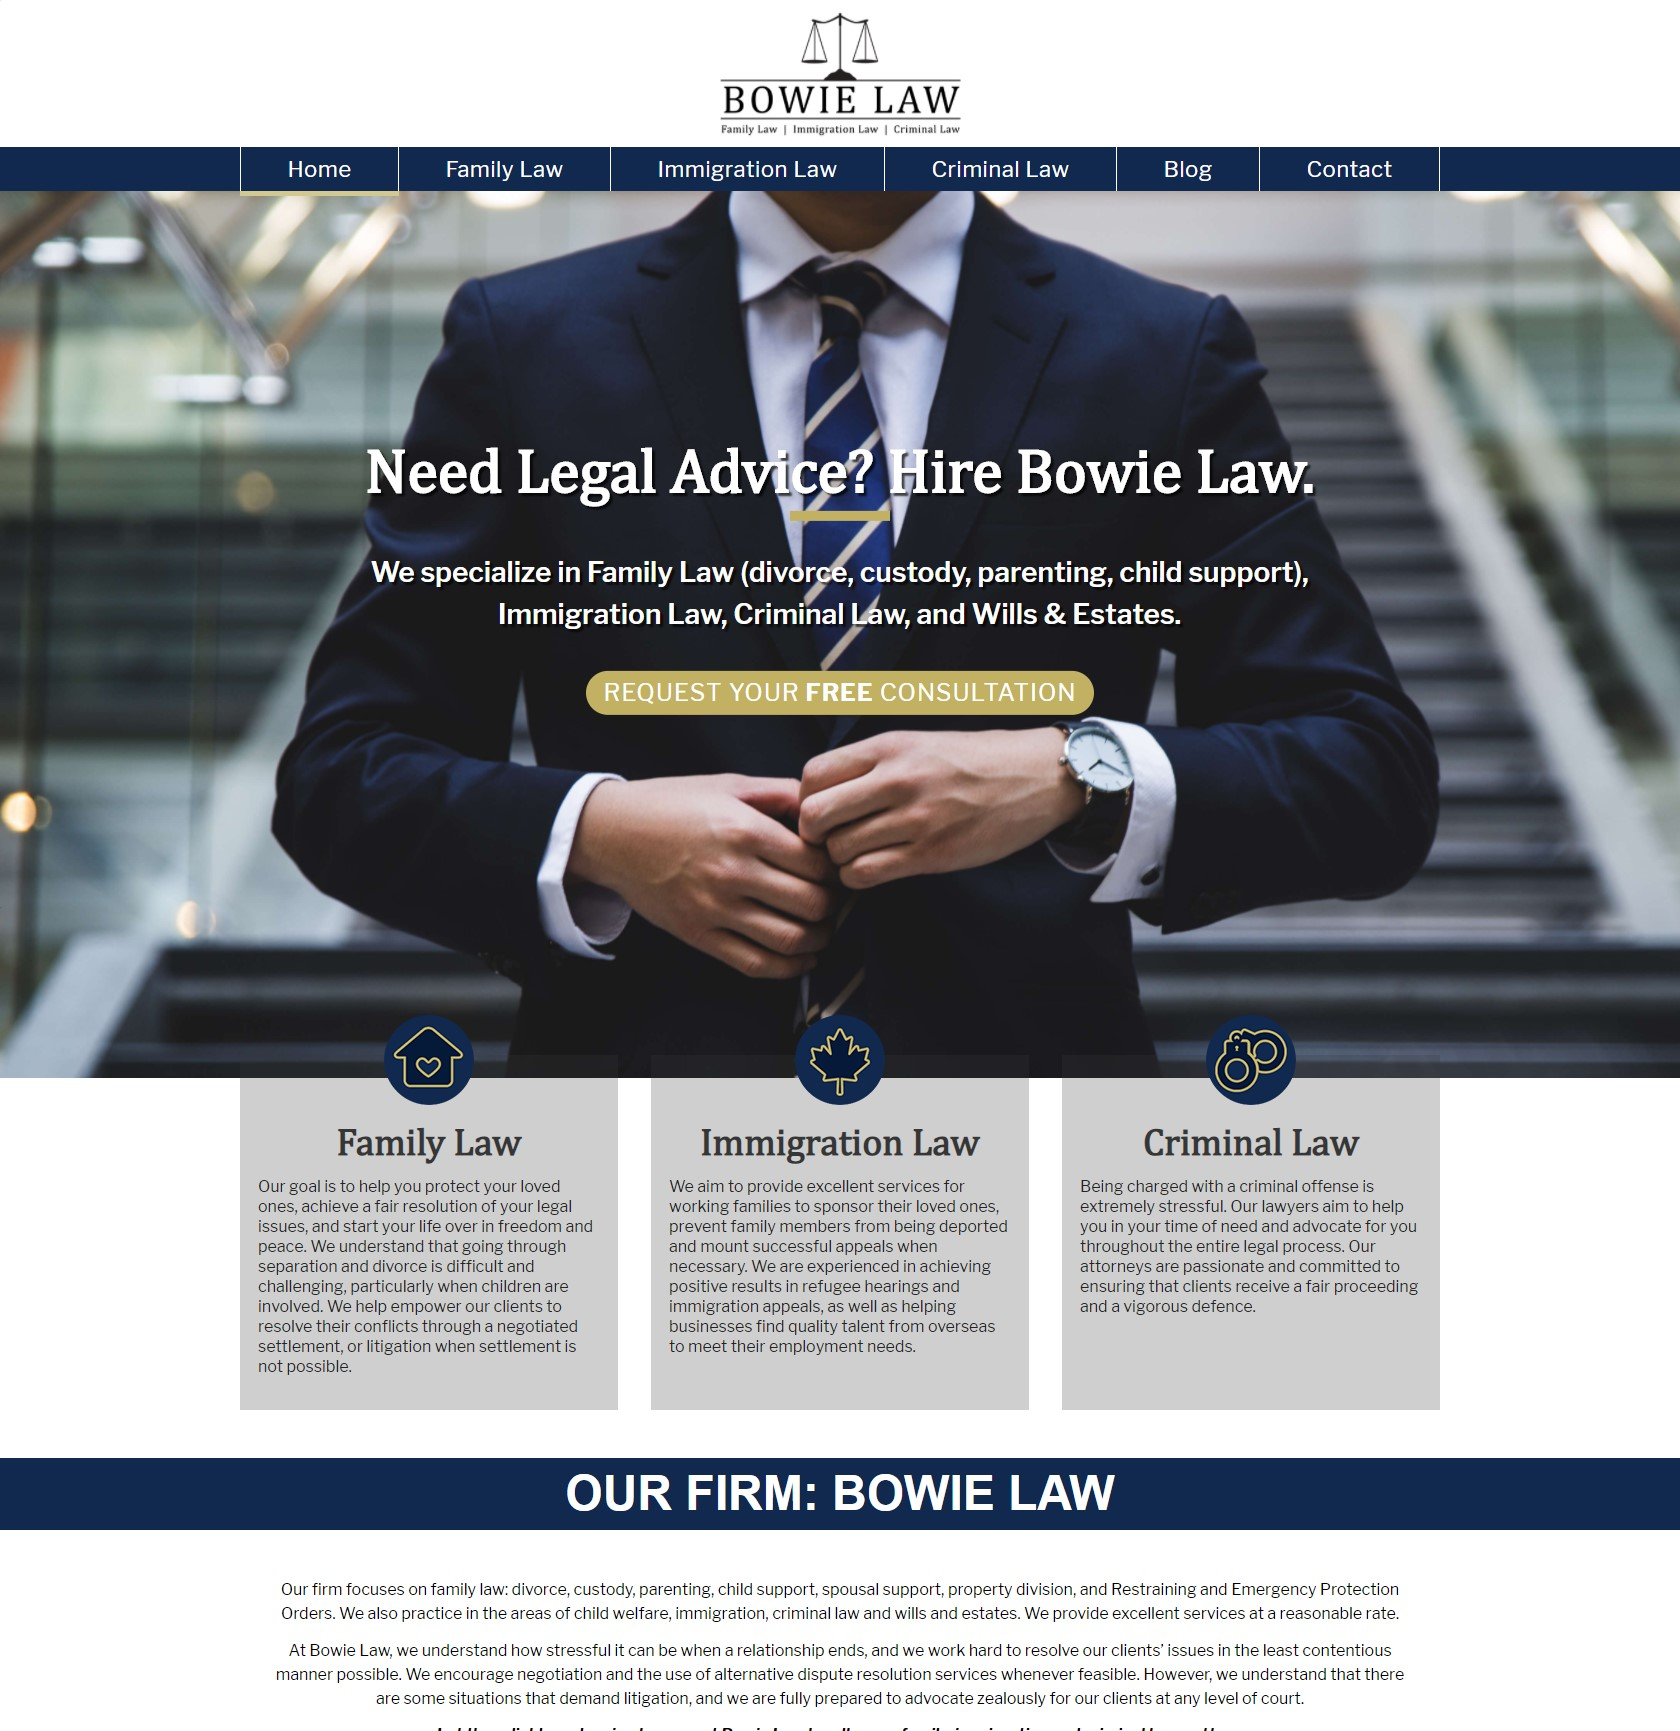 Bowie Law image